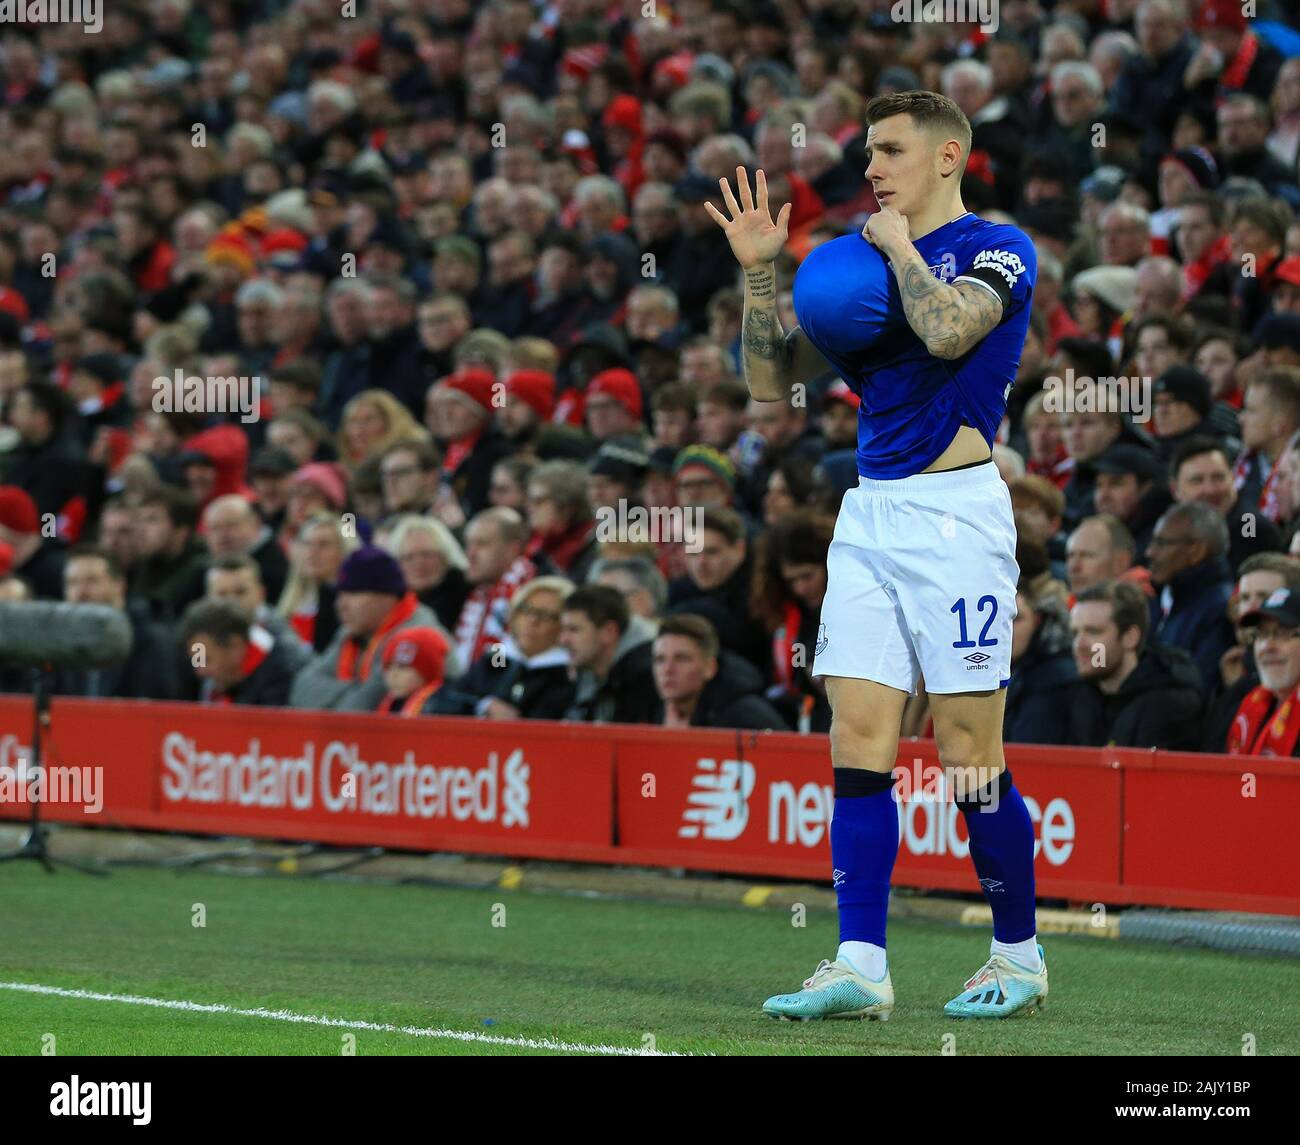 Anfield Liverpool Merseyside Uk 5th Jan 2020 English Fa Cup Football Liverpool Versus Everton Lucas Digne Of Everton Wipes The Ball On His Shirt Before Taking A Throw In Strictly Editorial